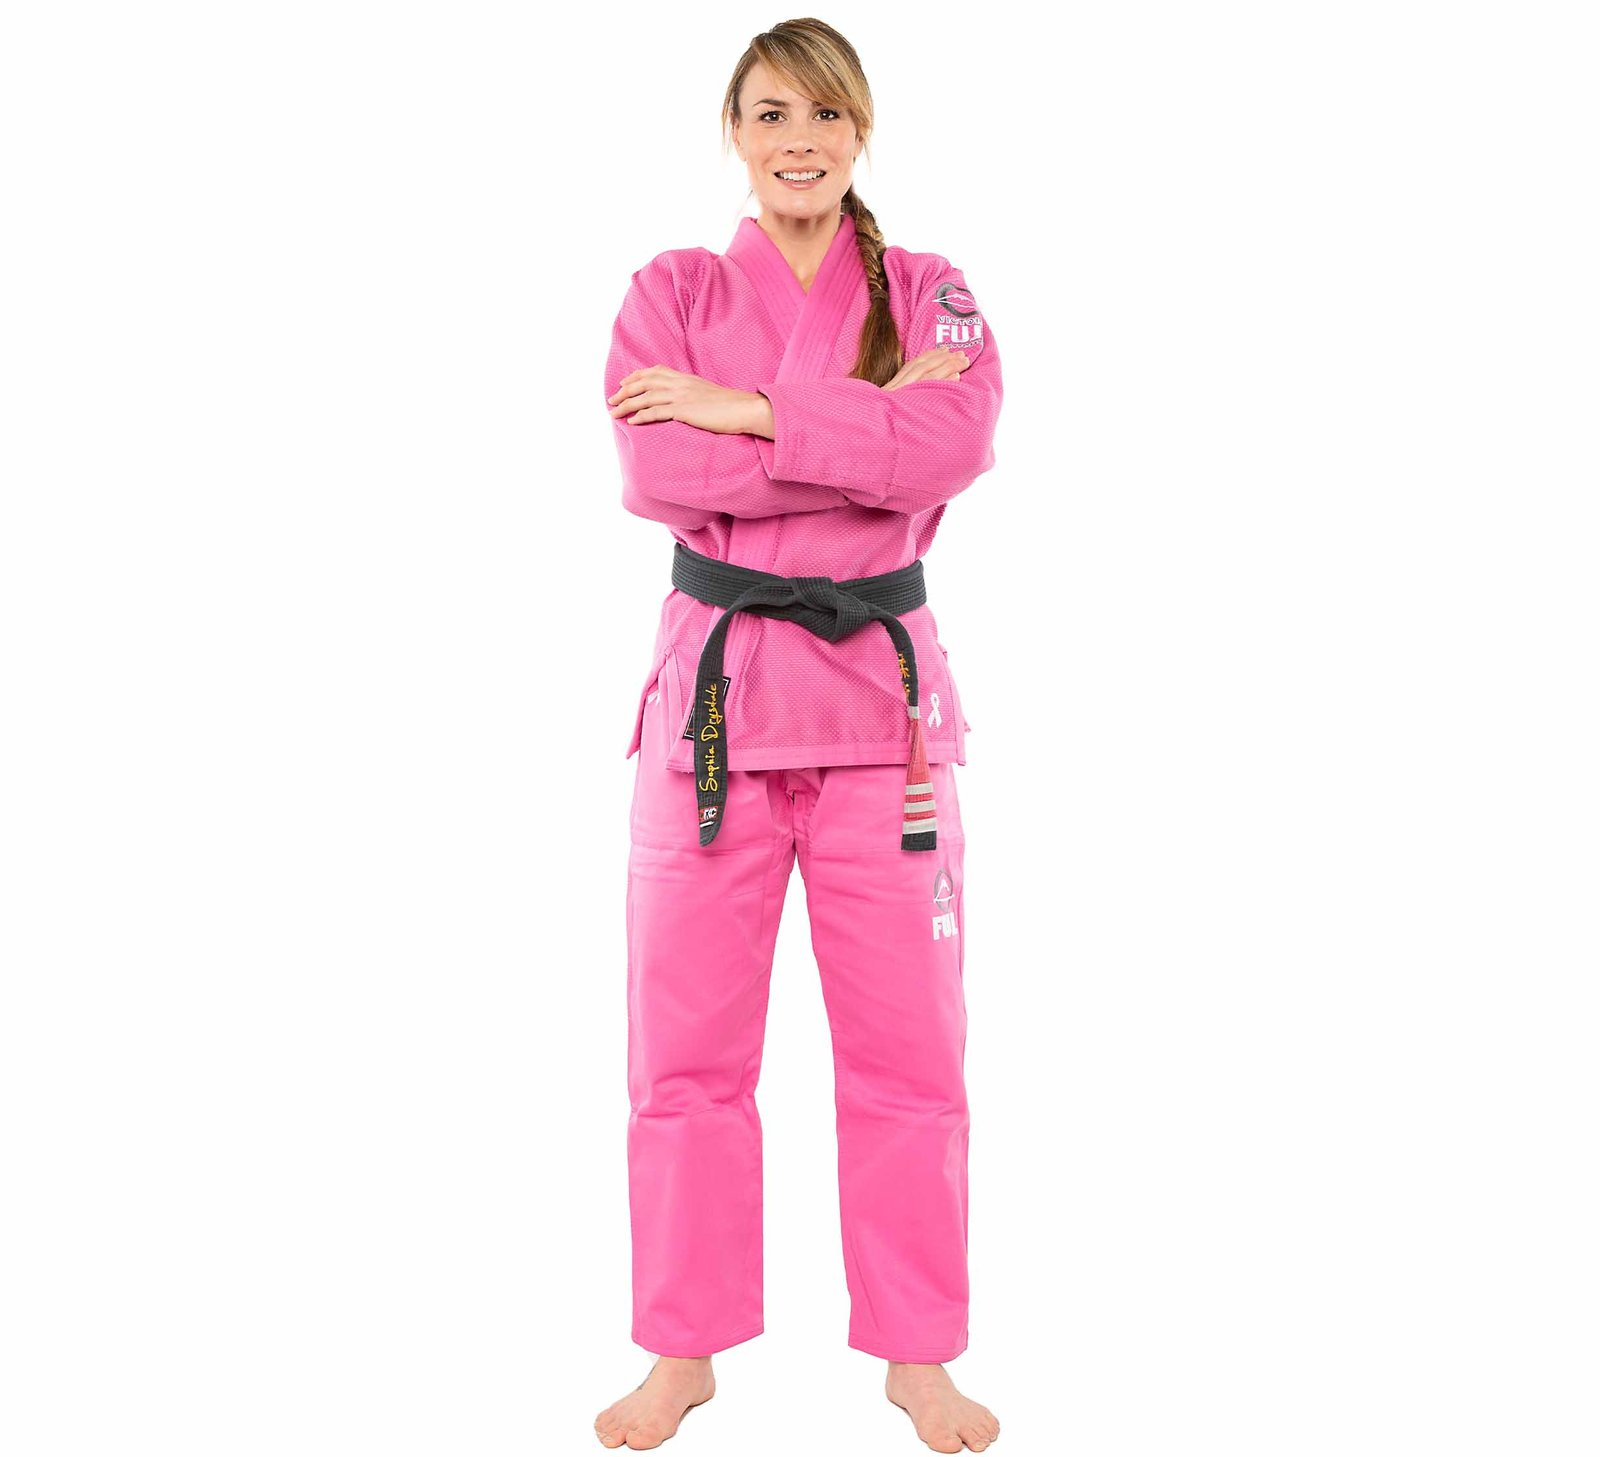 FUJI Sports ALL AROUND BJJ Női Gi, Pink